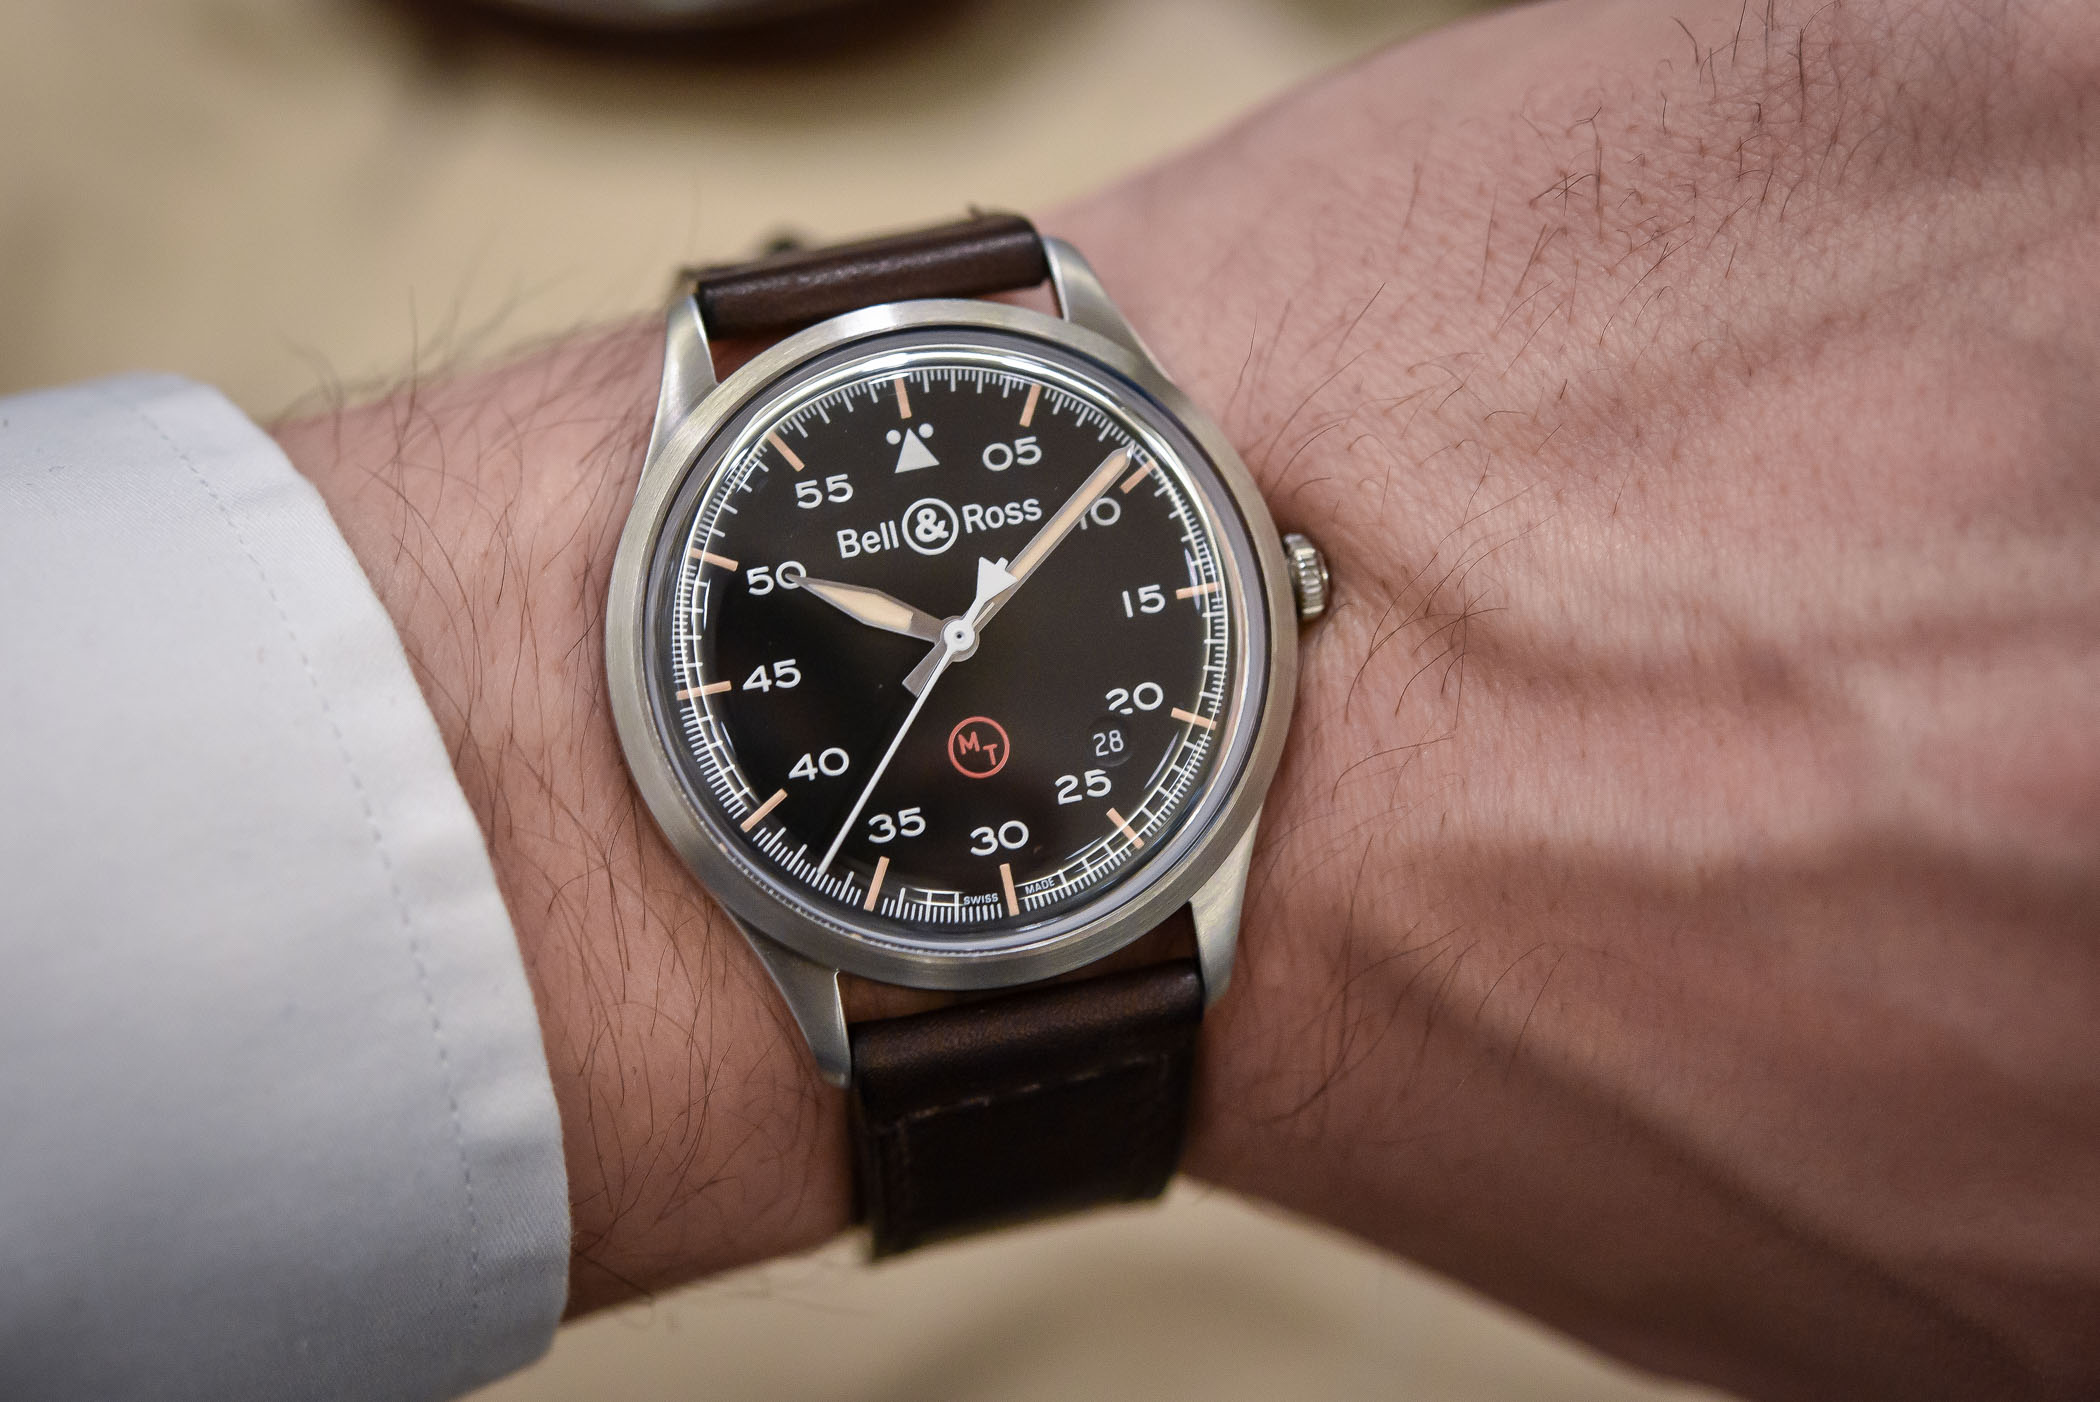 Back to Basics for Bell & Ross with the Vintage BR V1-92 Military